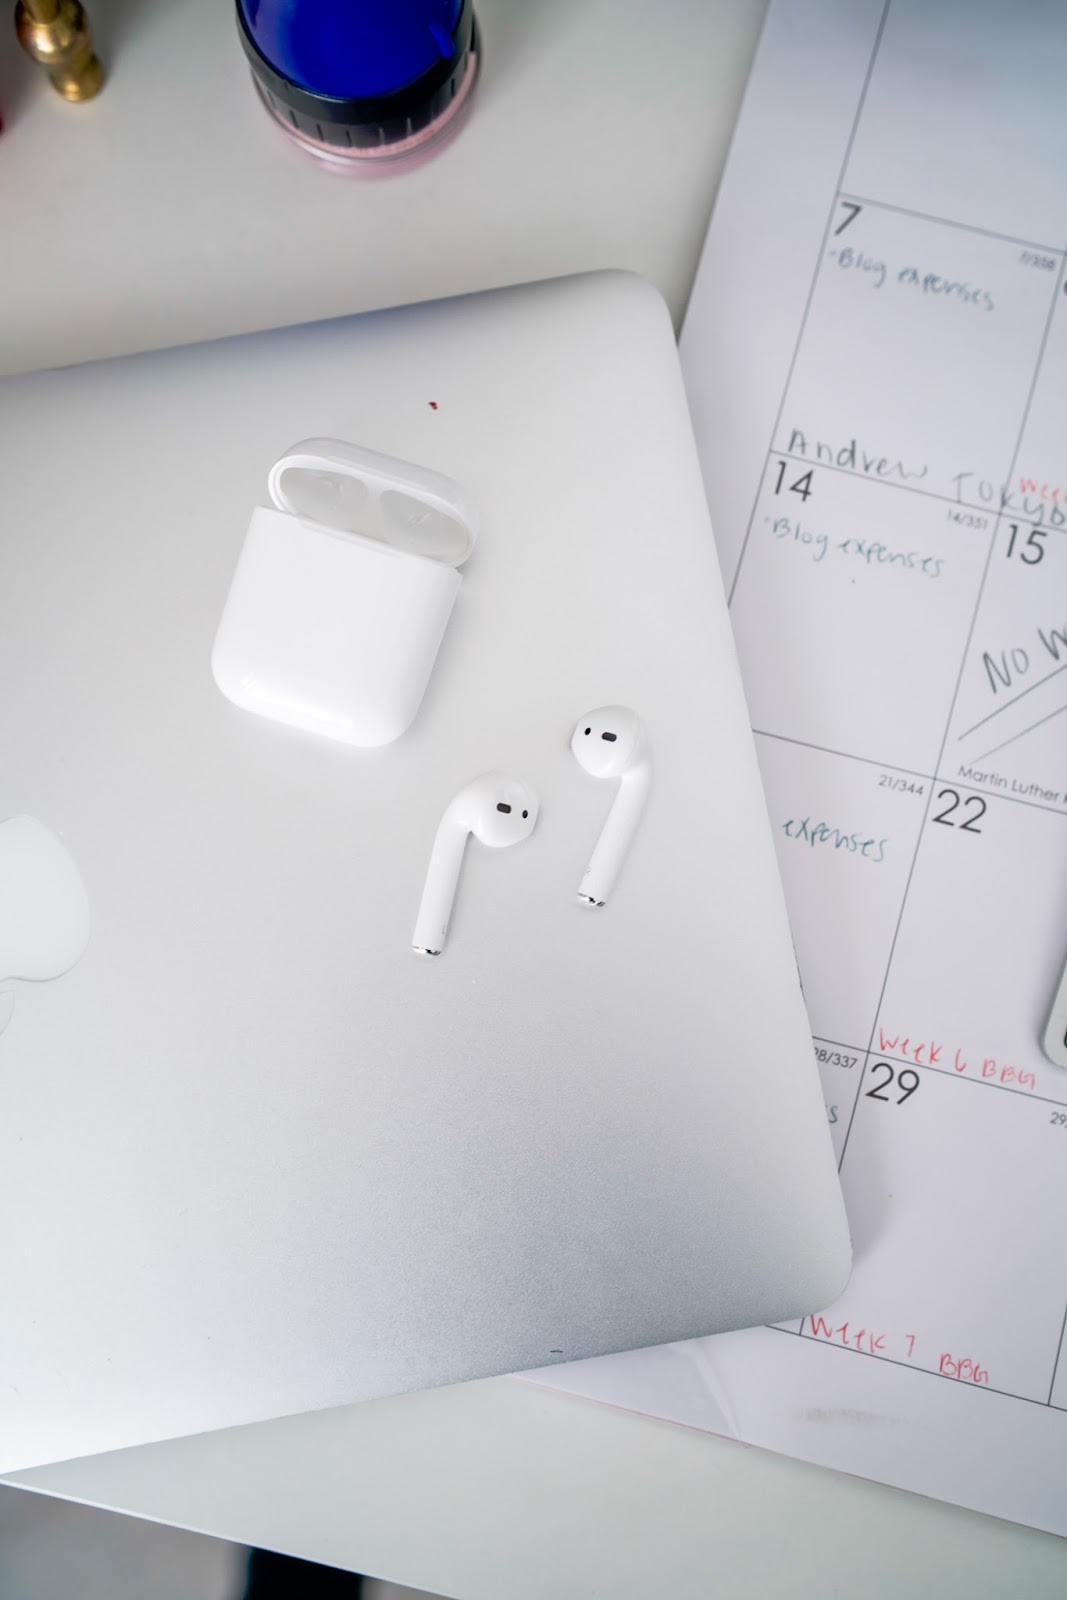 AirPod Review by popular New York lifestyle blogger Covering the Bases